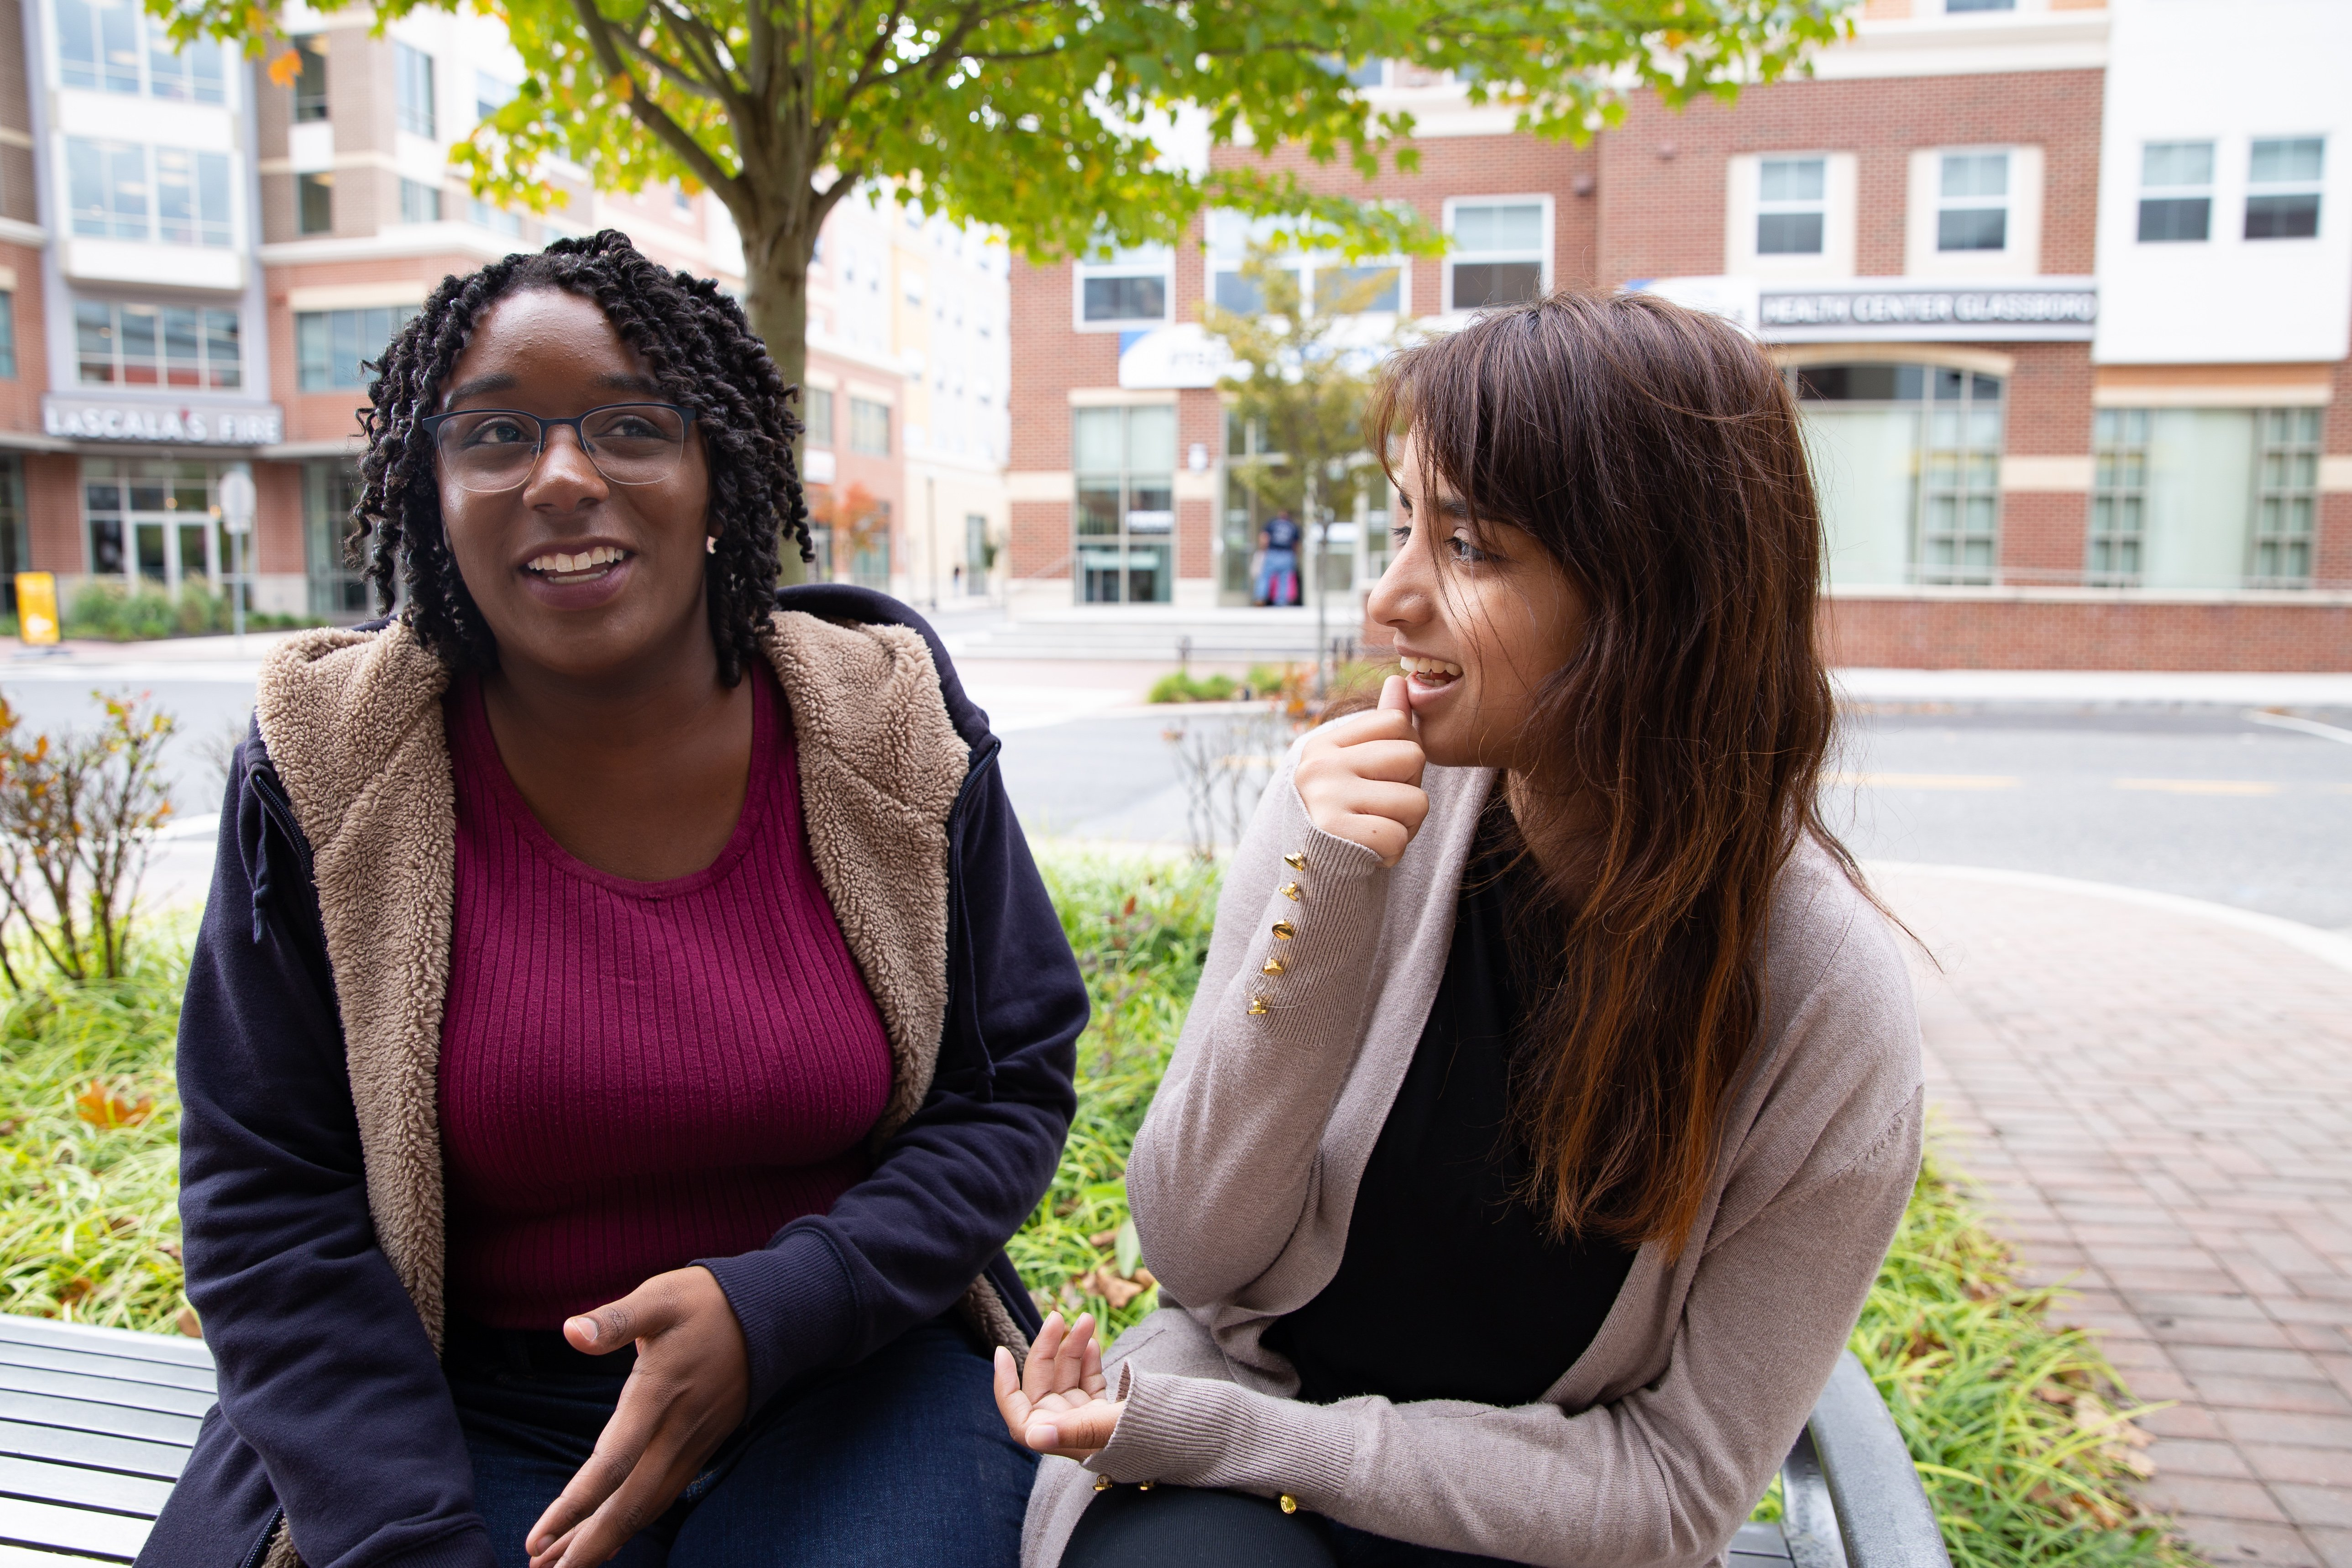 Higher Education Administration track graduate student Jessica Hassell (left) talks to another student on Rowan Boulevard.